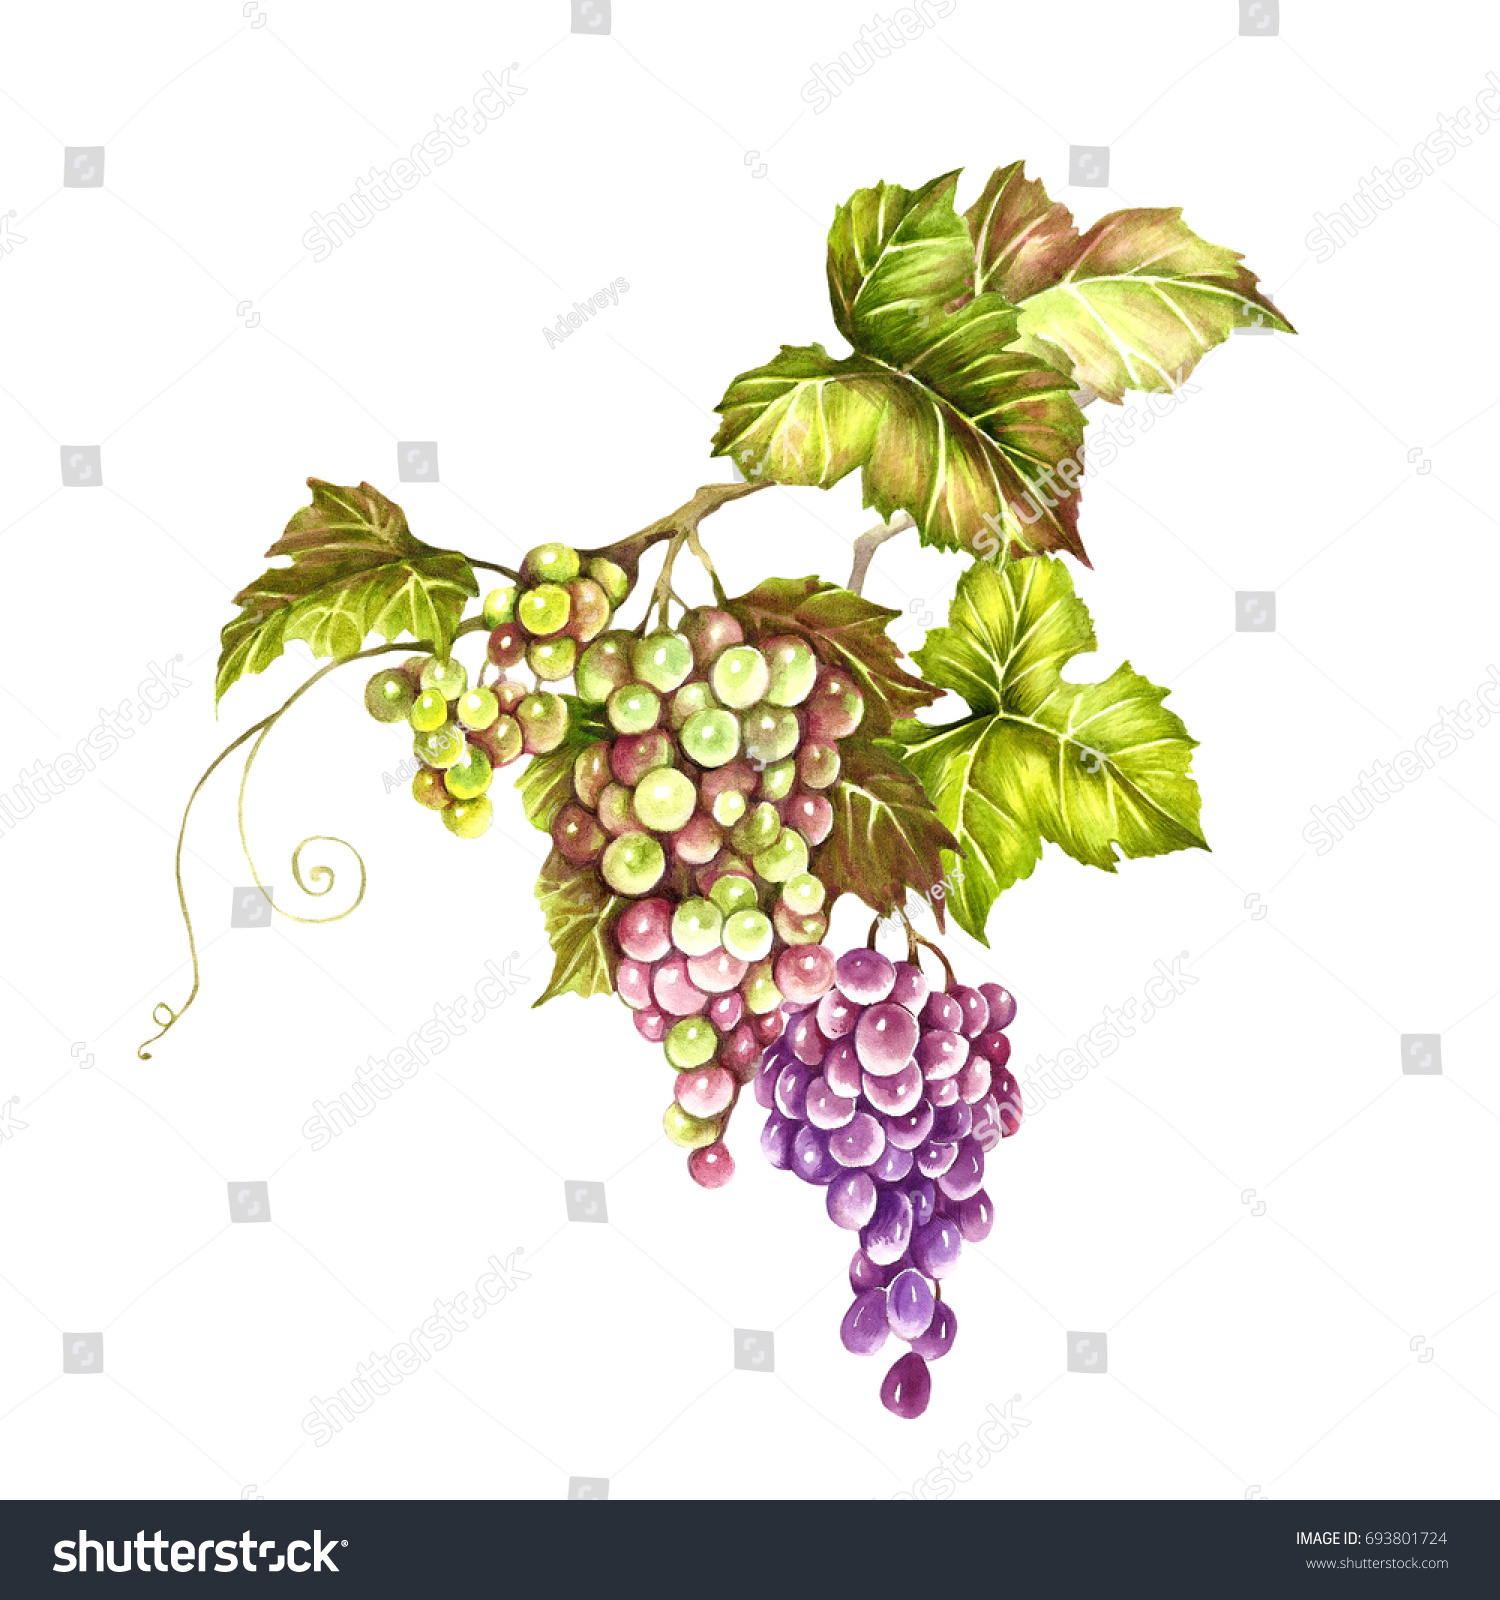 bunch grapes hand draw watercolor illustration stock illustration